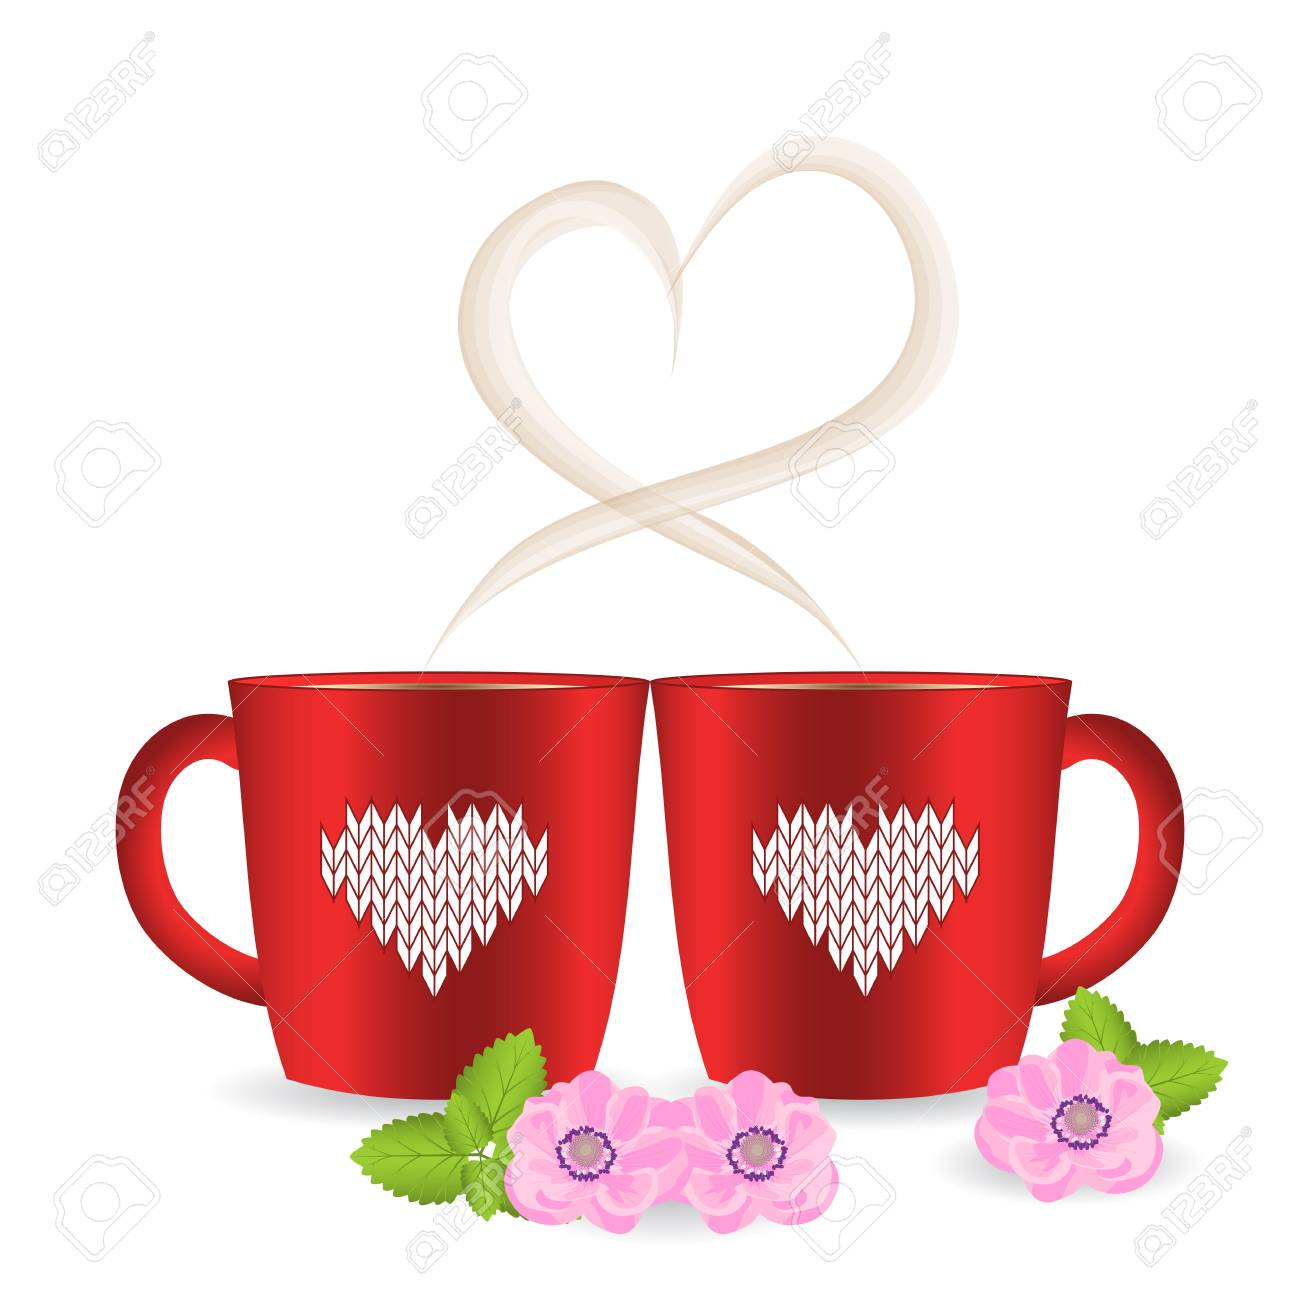 Two Tea Or Coffee Cups With Heart Shaped Steam And Knitted Pattern ...